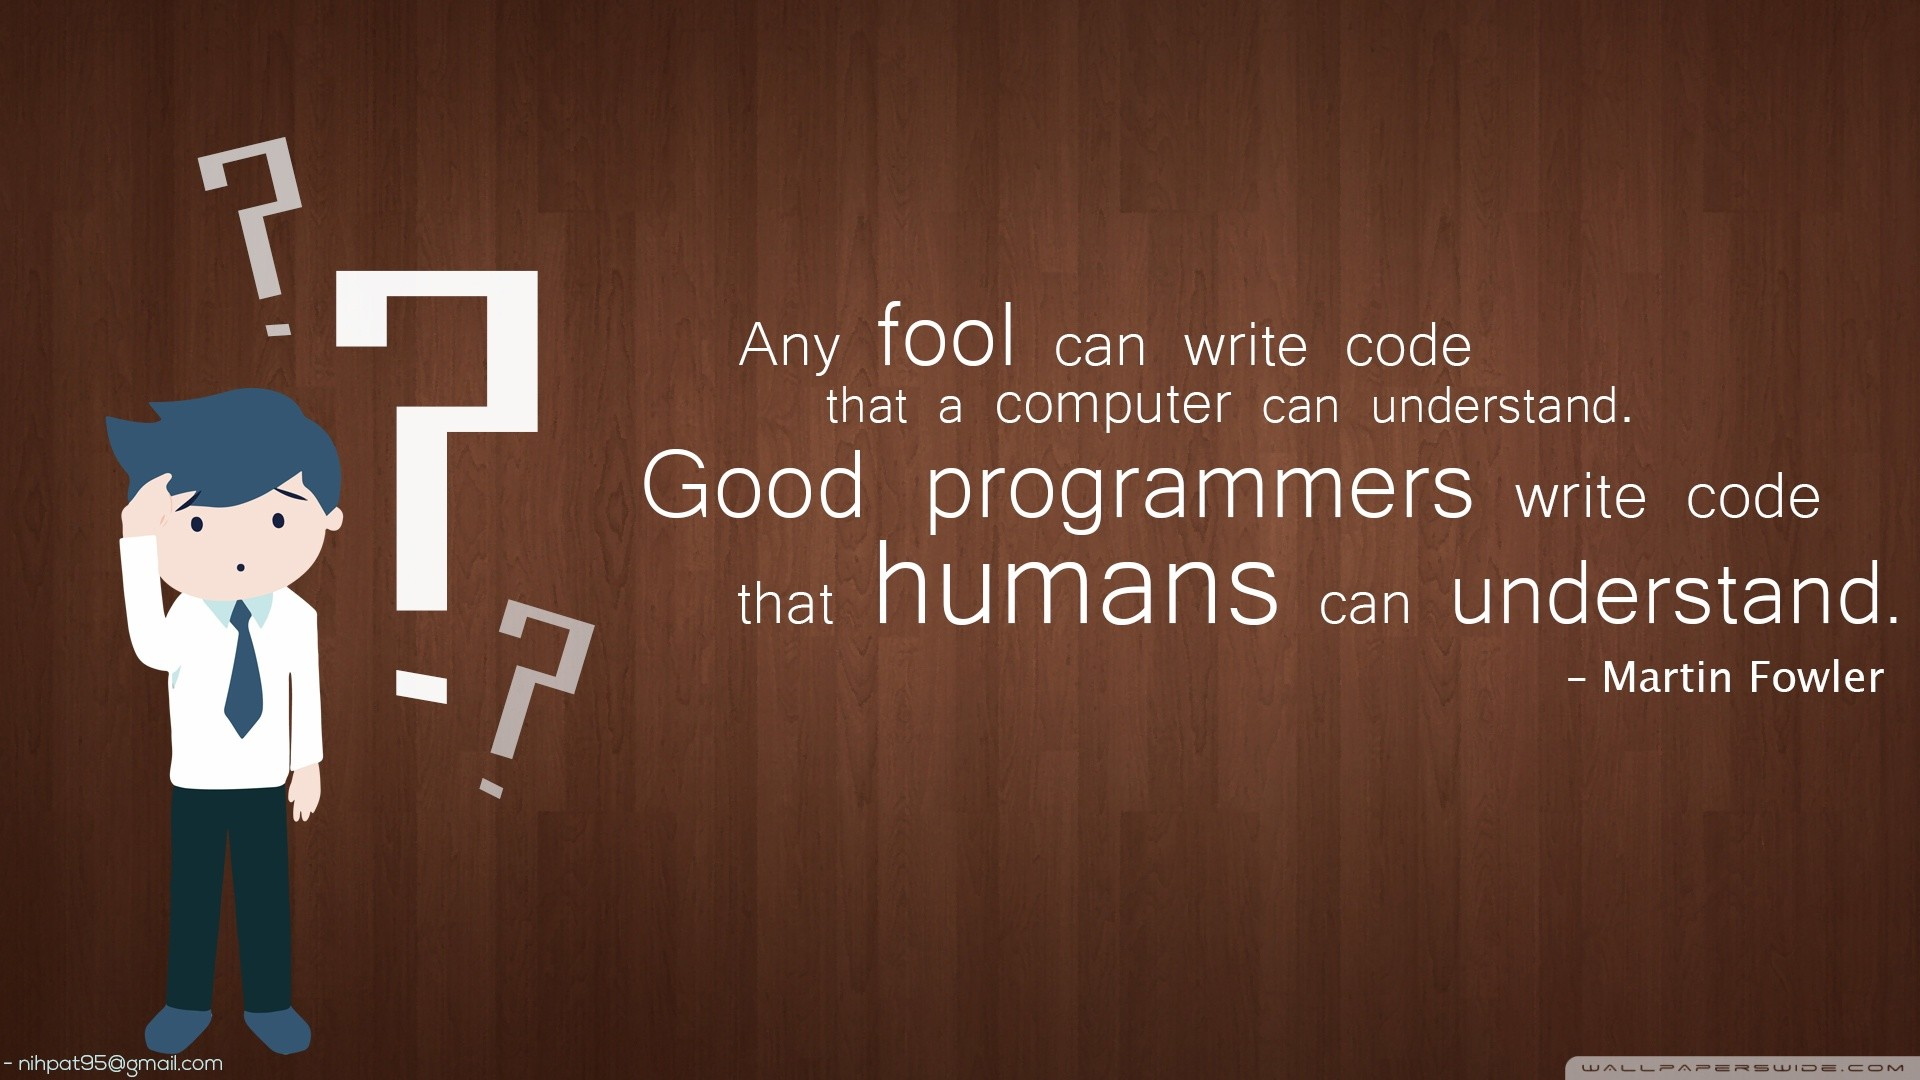 Programmer Quotes Wallpaper Hd Funny Written Wallpapers 66 Images